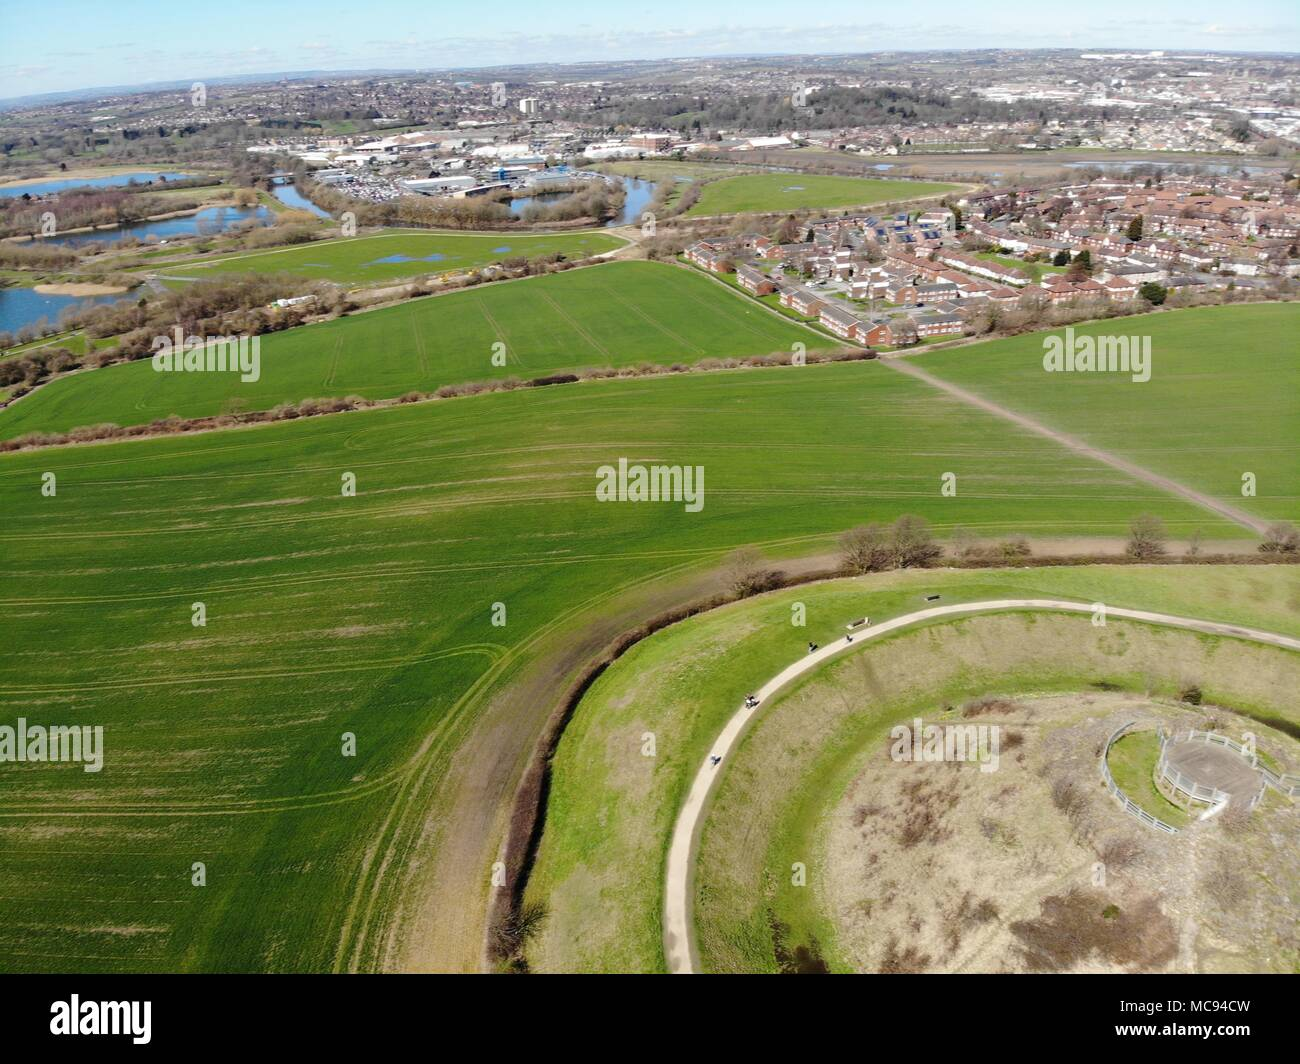 Aerial photos of Sandel Castle in Wakefield in the UK, the ruins of the castle have a moat around the castle grounds, it's also covered in green grass Stock Photo